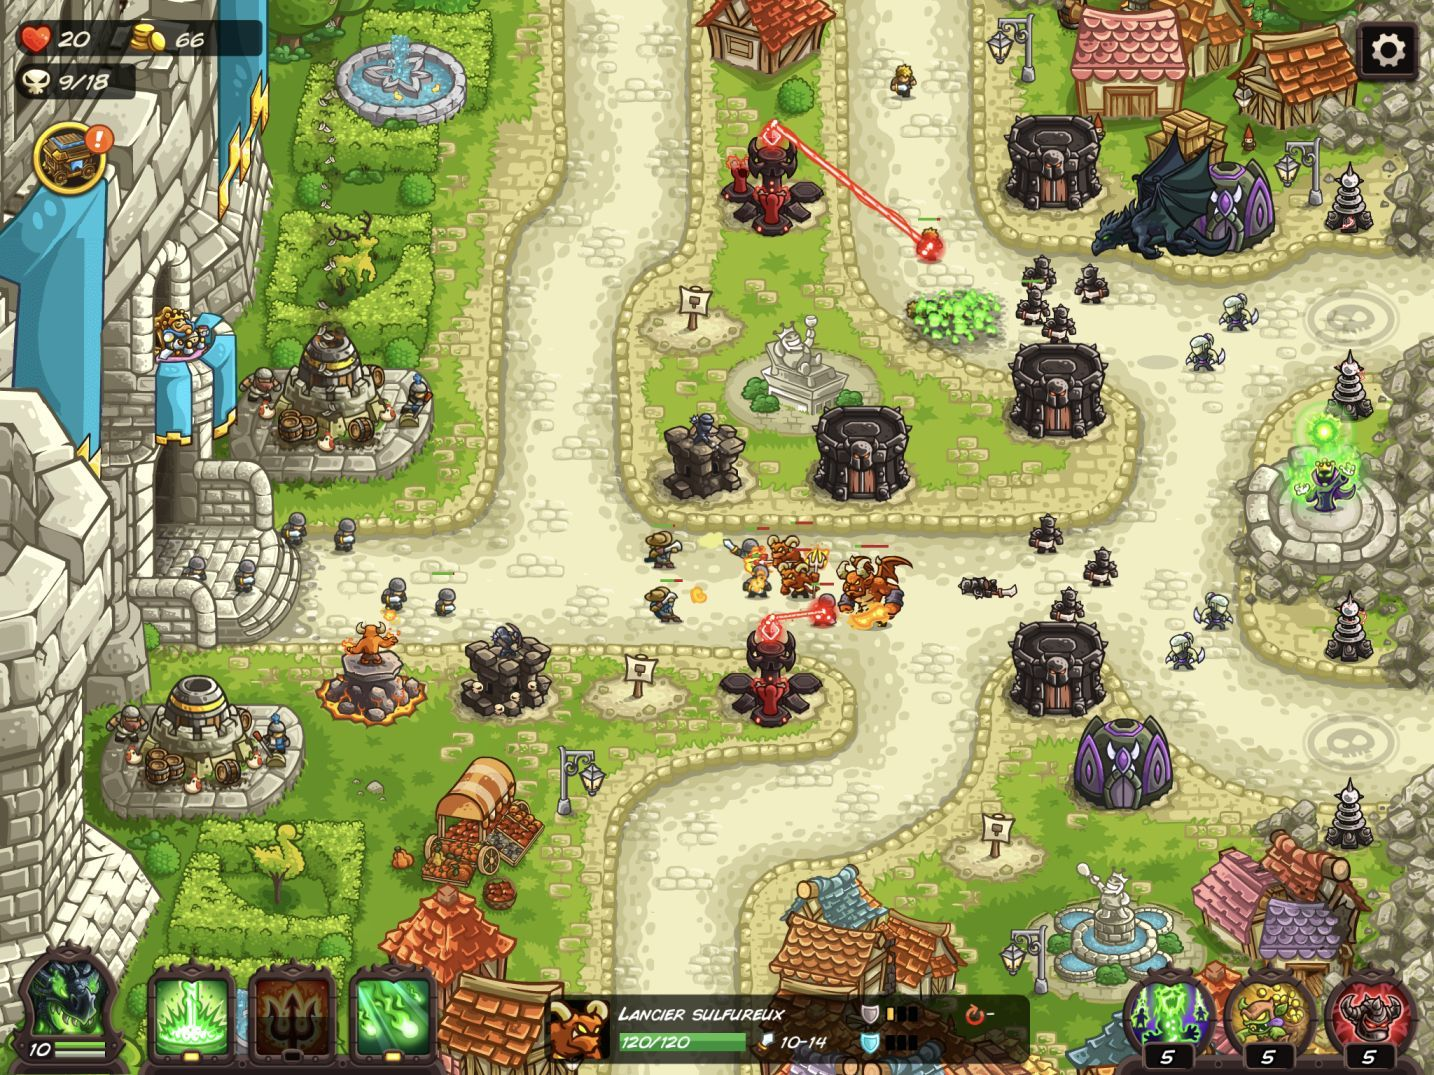 Kingdom Rush Vengeance (copie d'écran 27 sur Android)